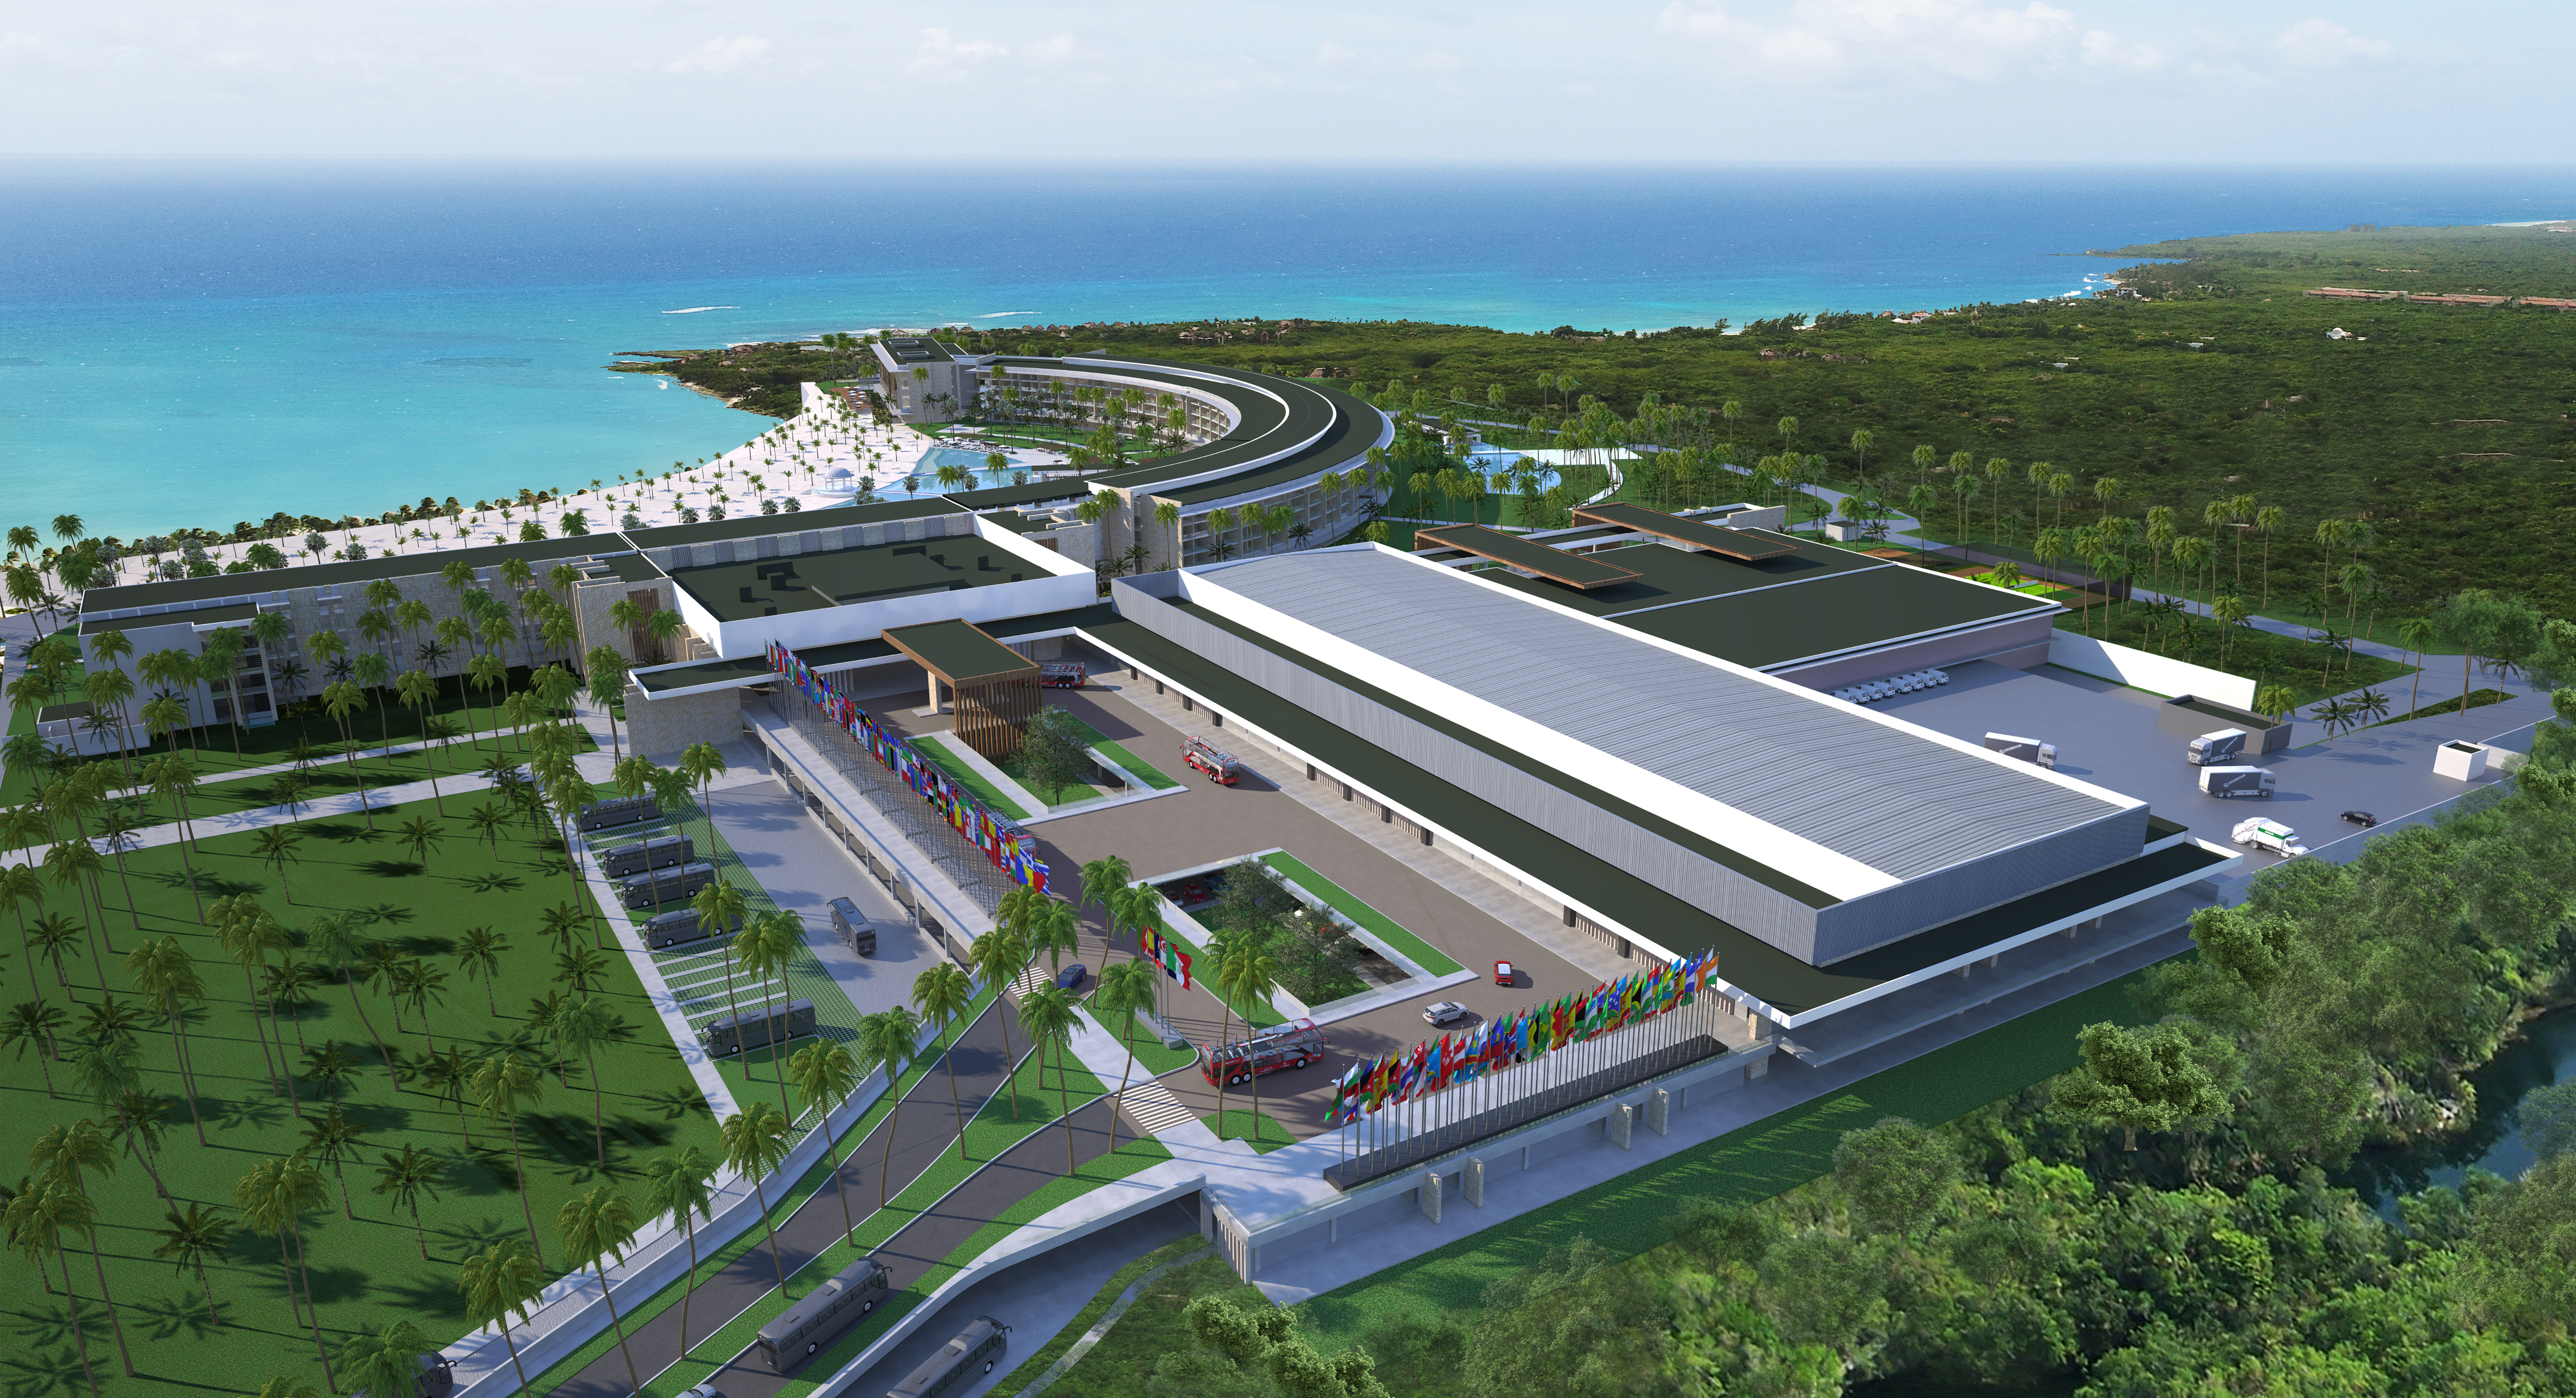 Barcelo Maya Riviera - Convention Centre - artist rendering